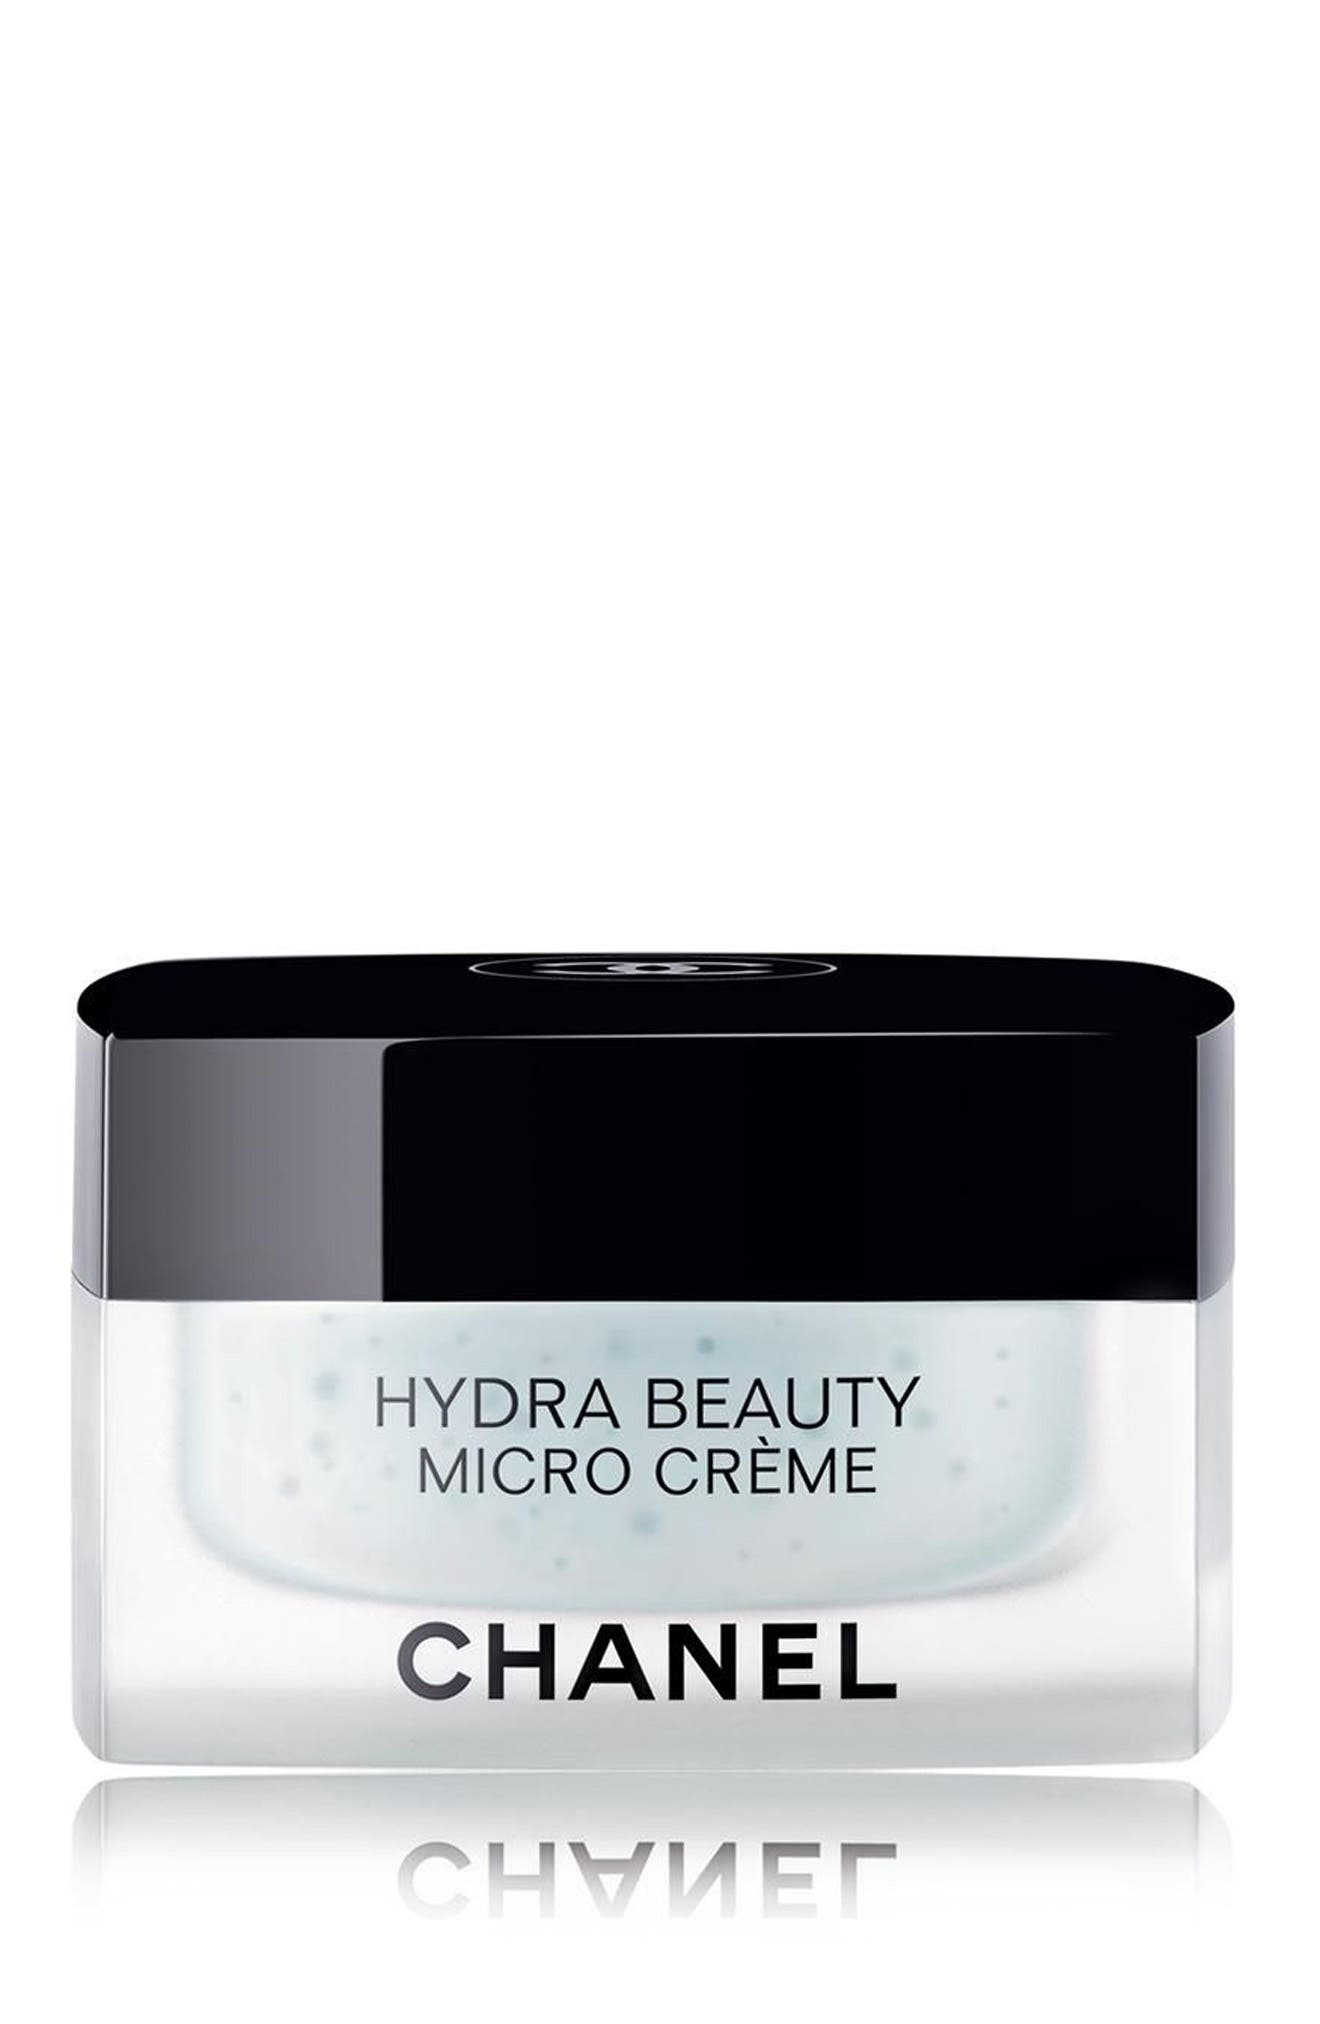 CHANEL HYDRA BEAUTY MICRO CRÈME 